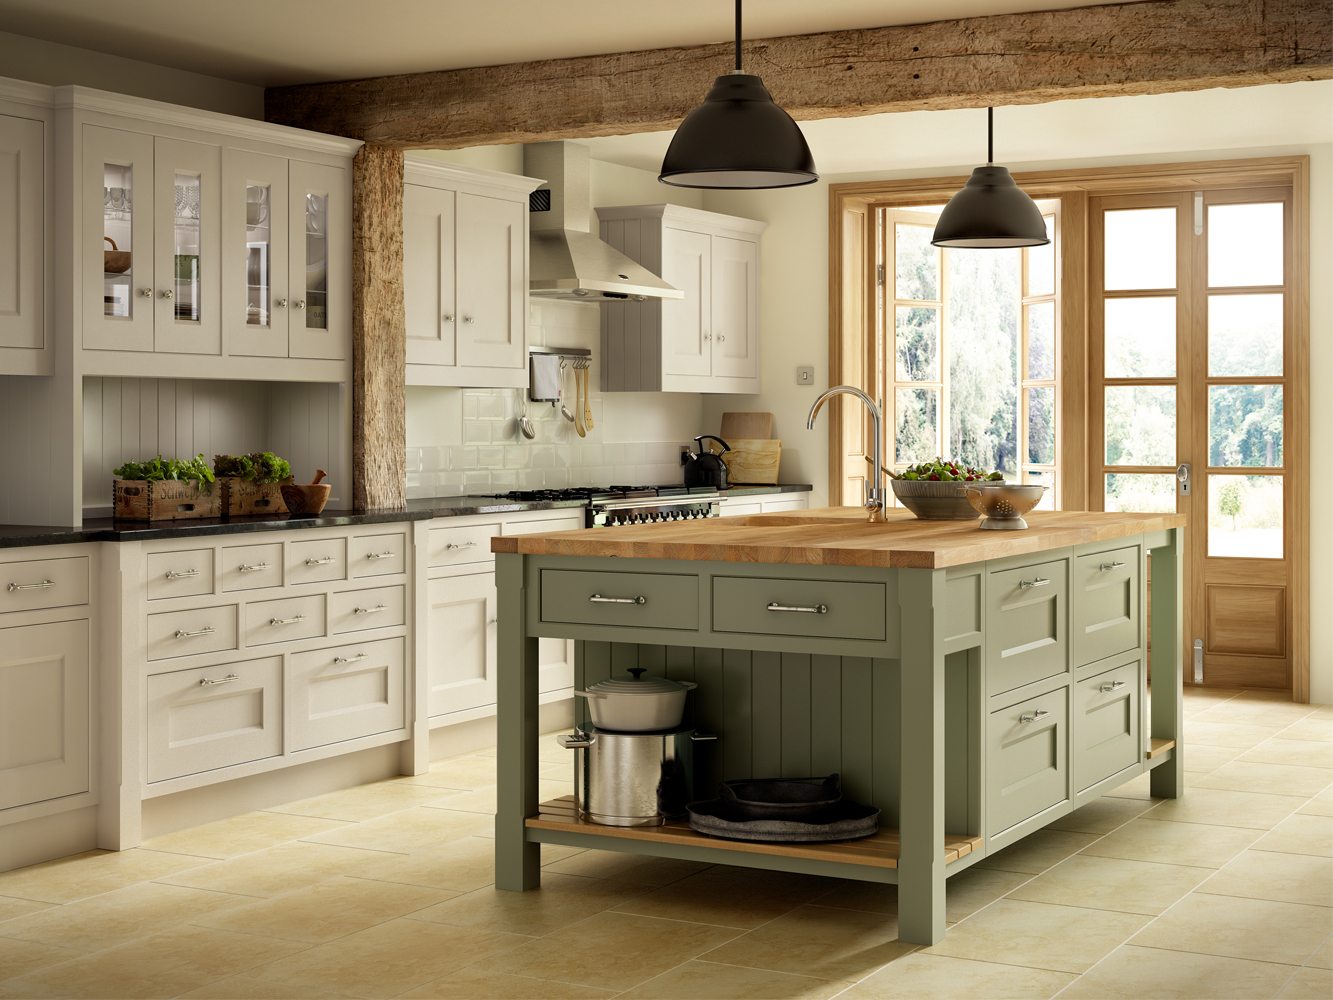 pix-us-cg-warm-kitchen